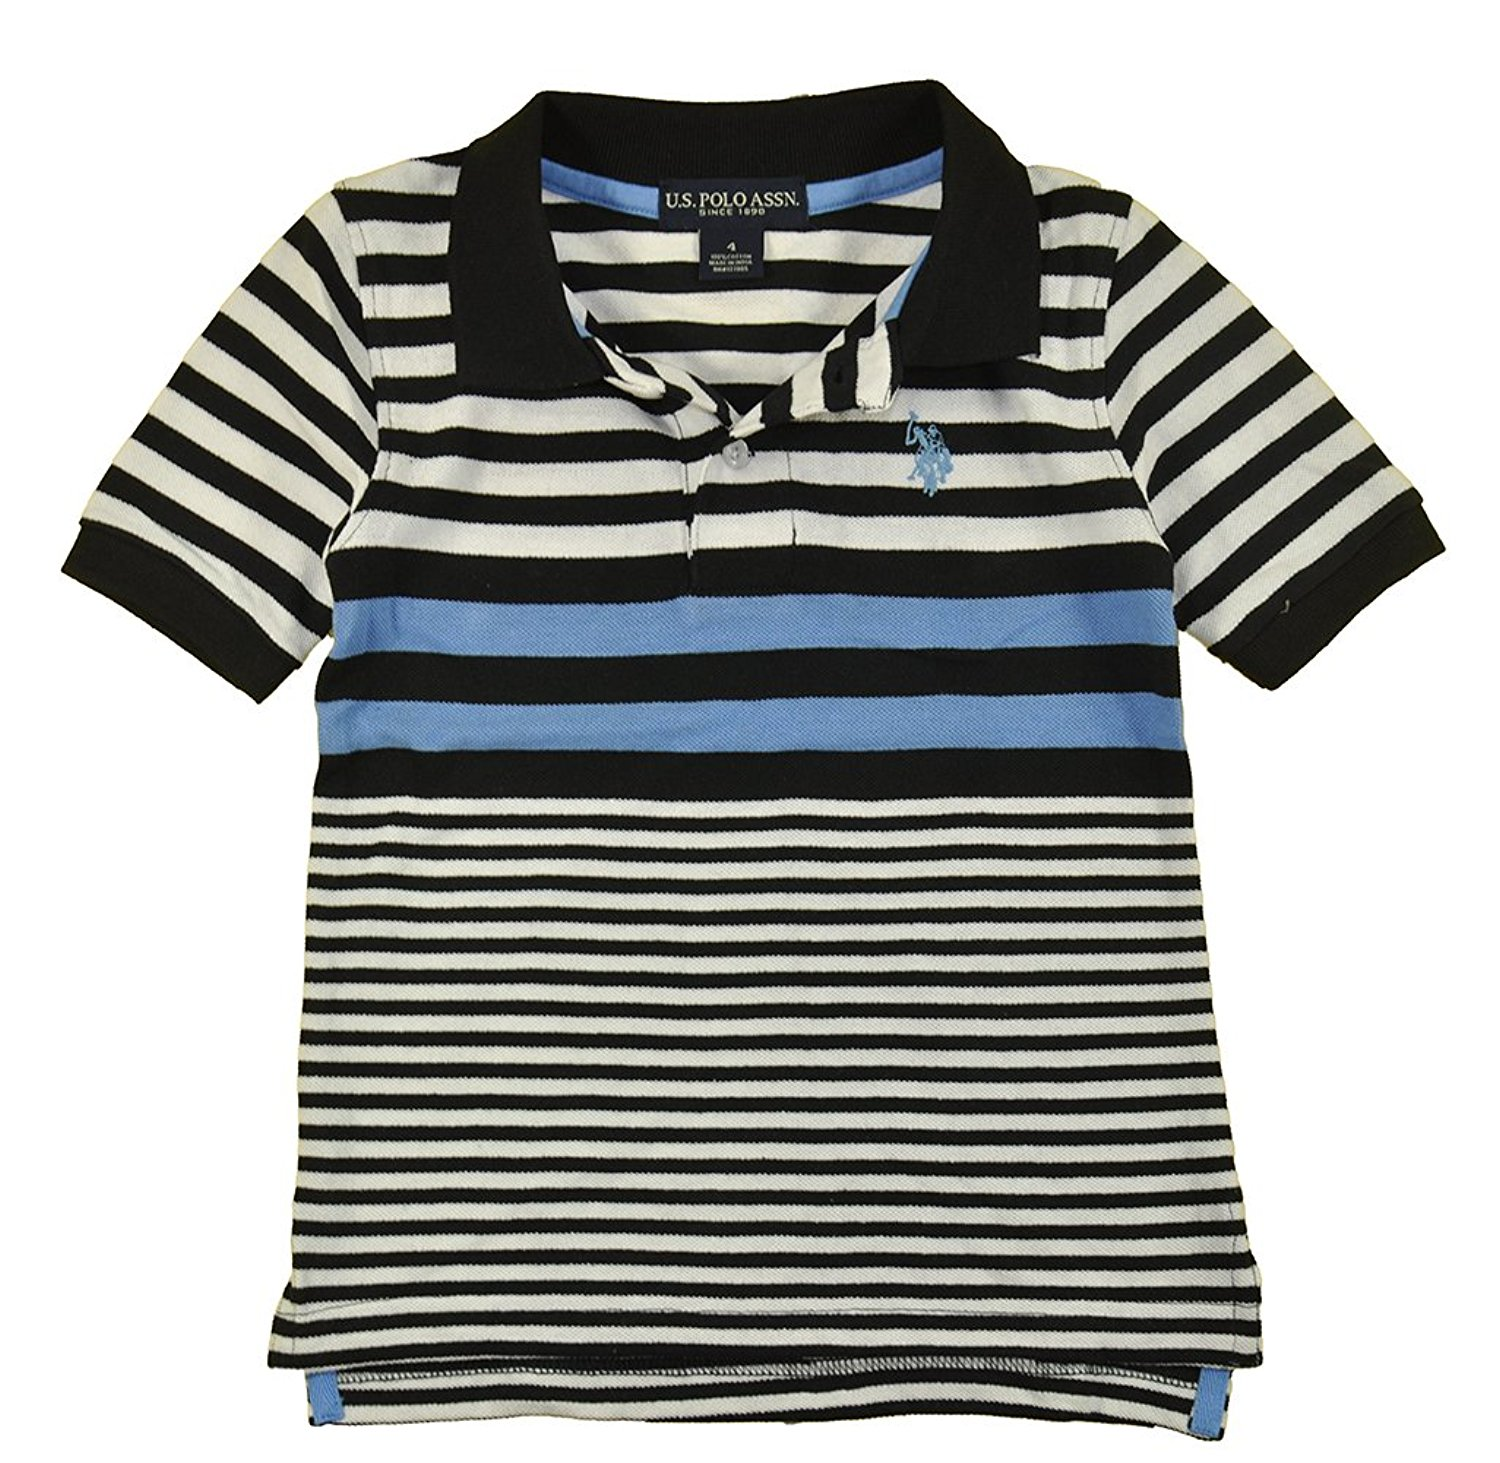 d178fee8 Get Quotations · US Polo Assn Little Boys S/S Striped White Blue Black Polo